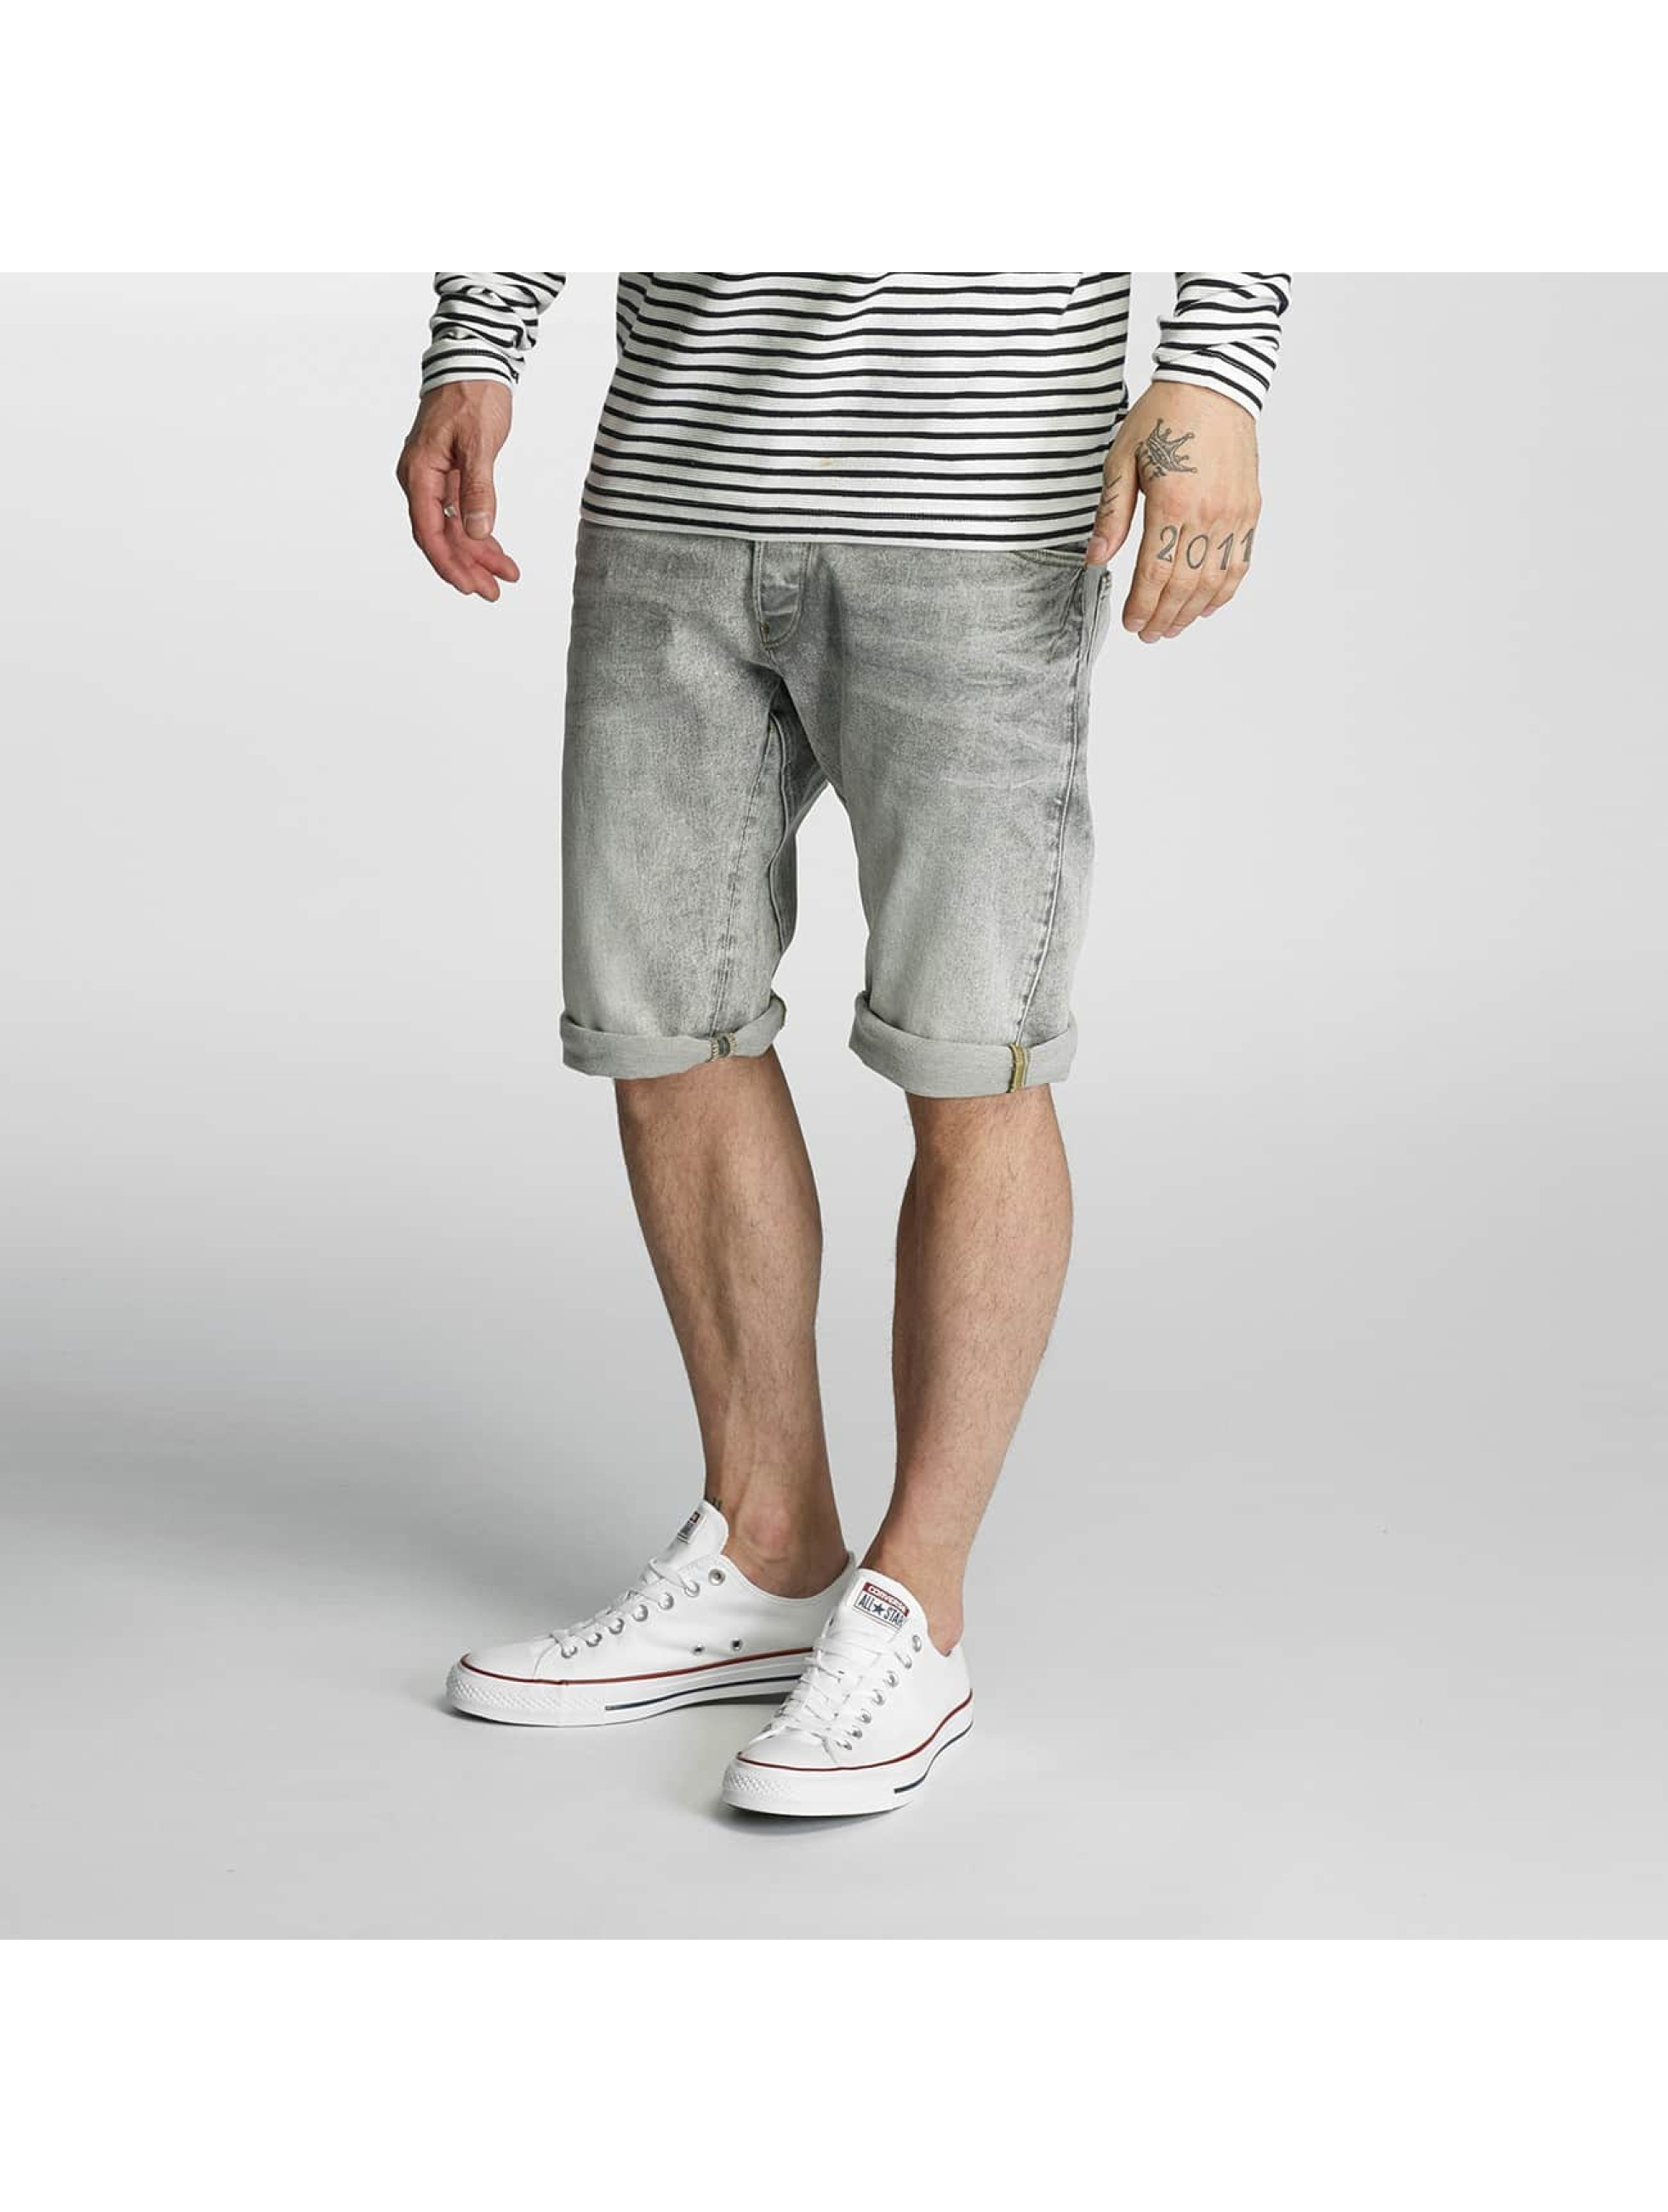 G-Star Männer Shorts Arc 3D in grau